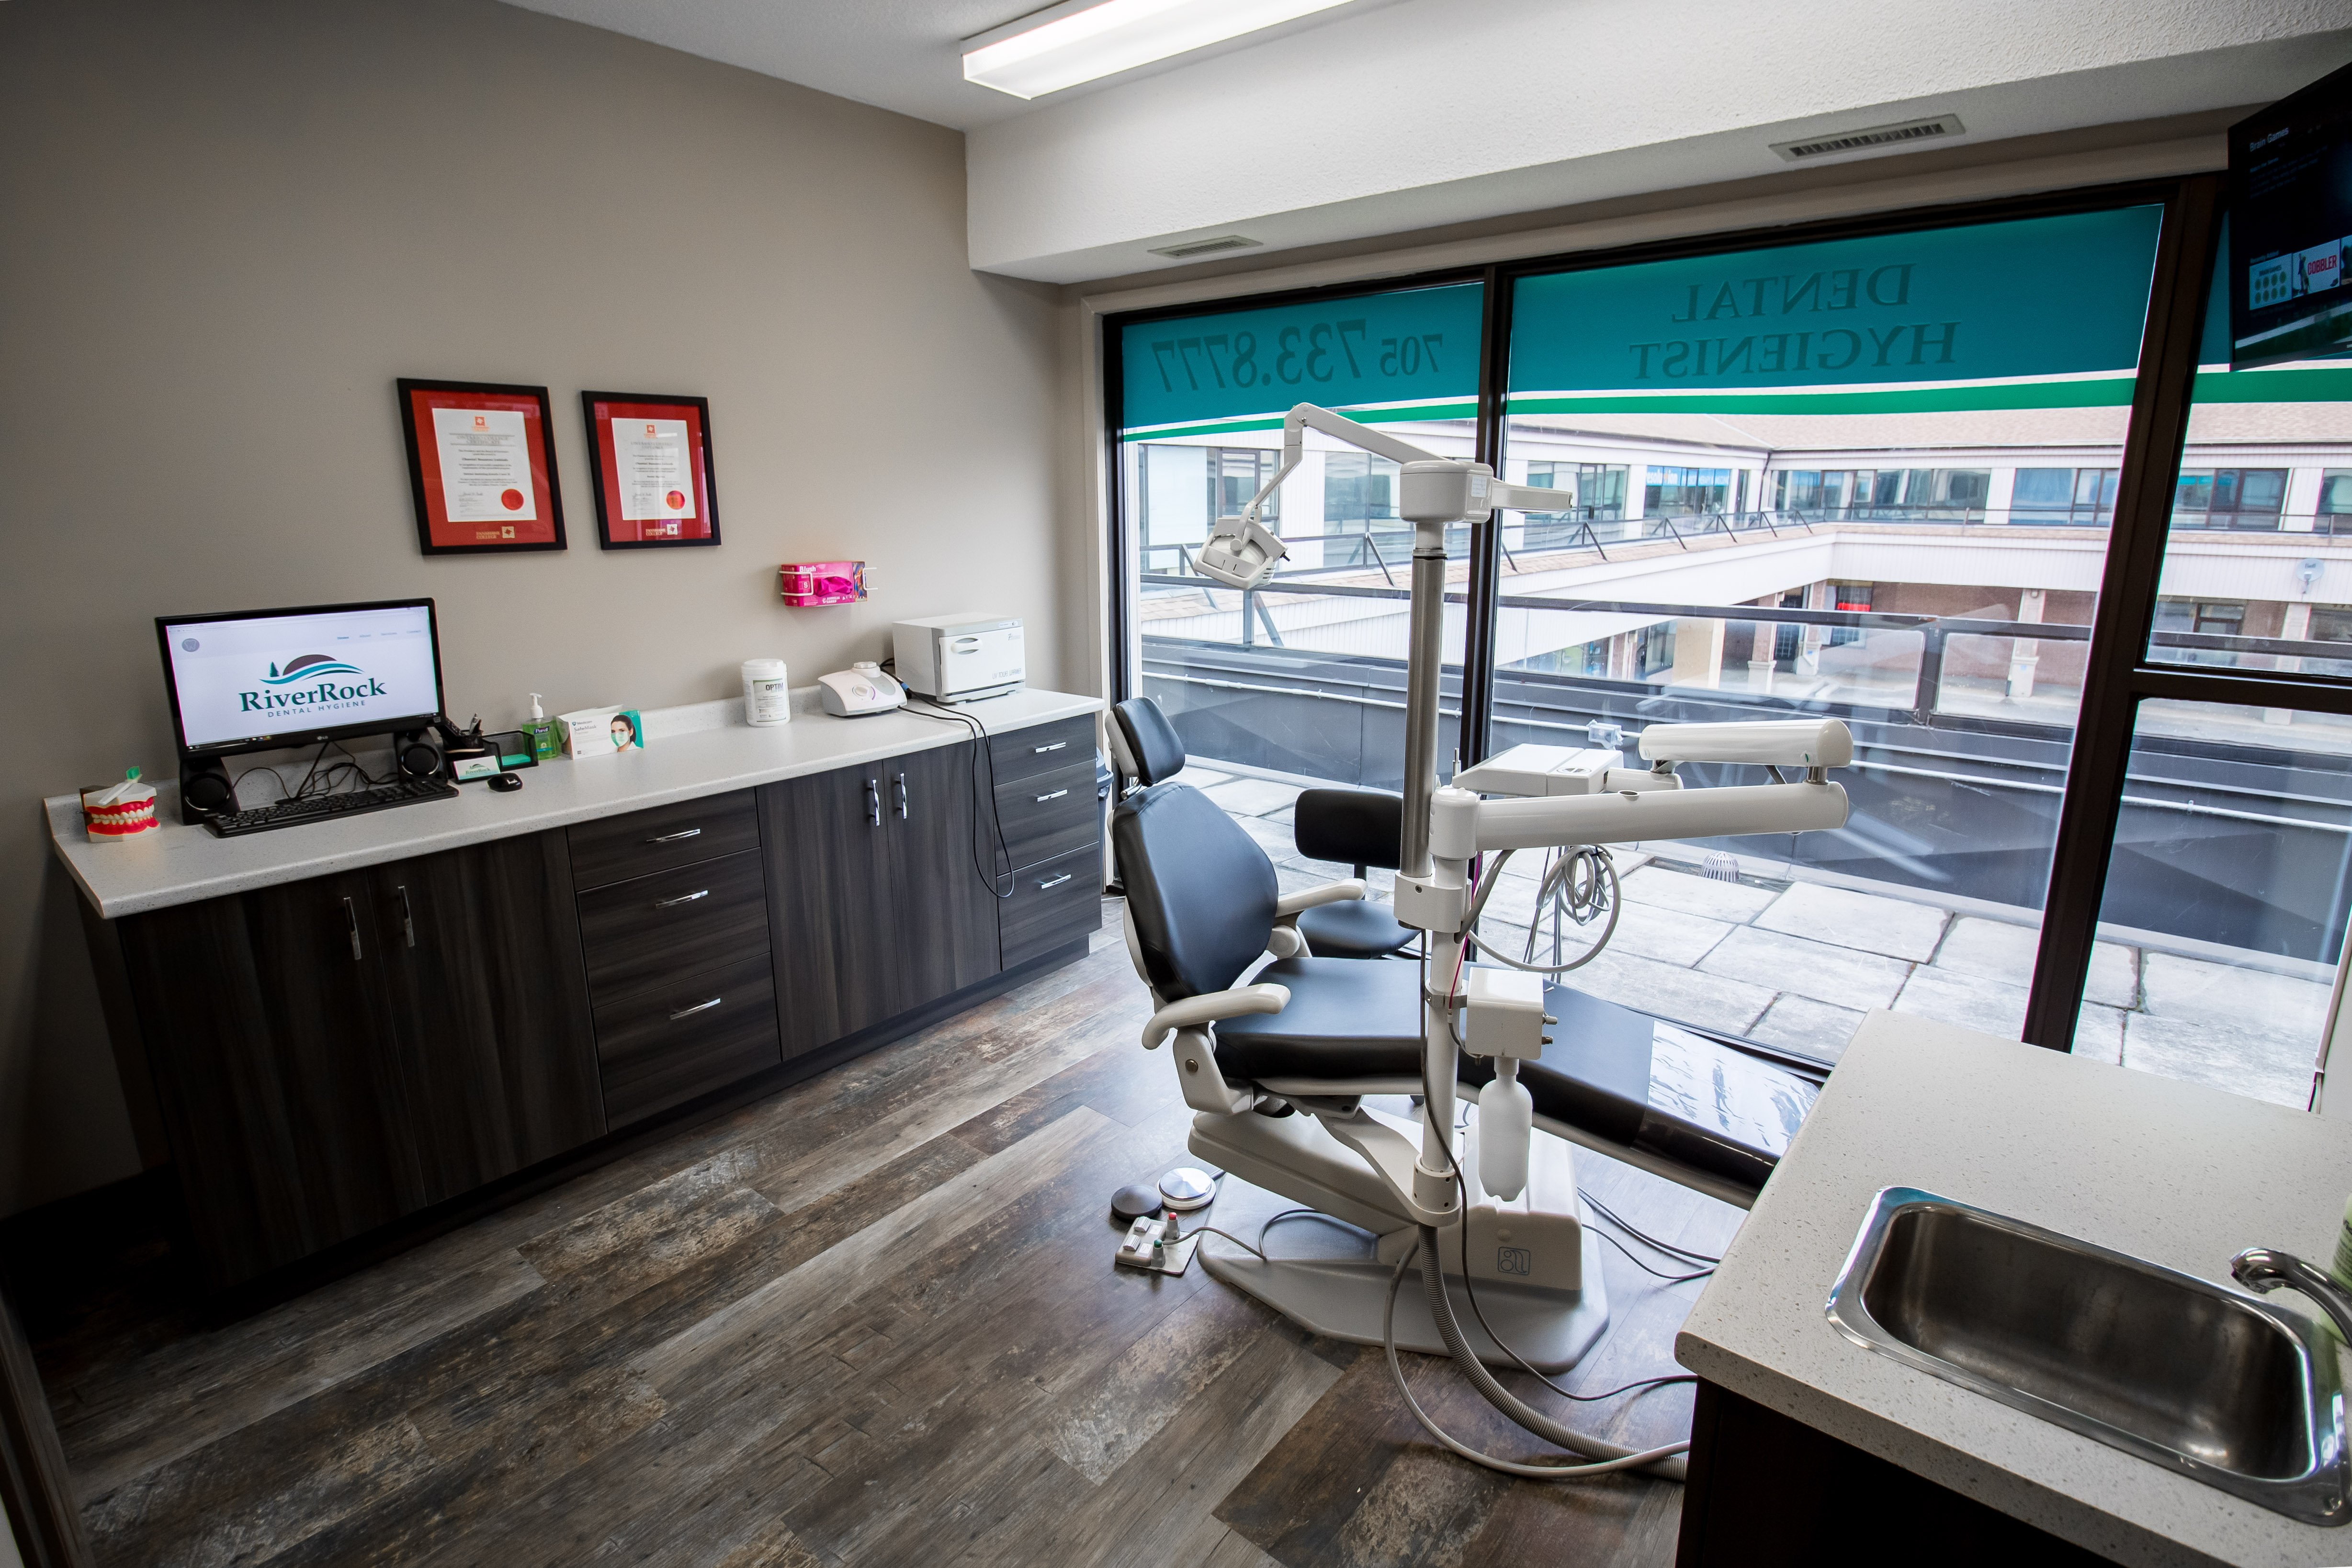 river rock dental hygiene, dental chair, barrie, ontario, teeth cleaning, teeth whitening